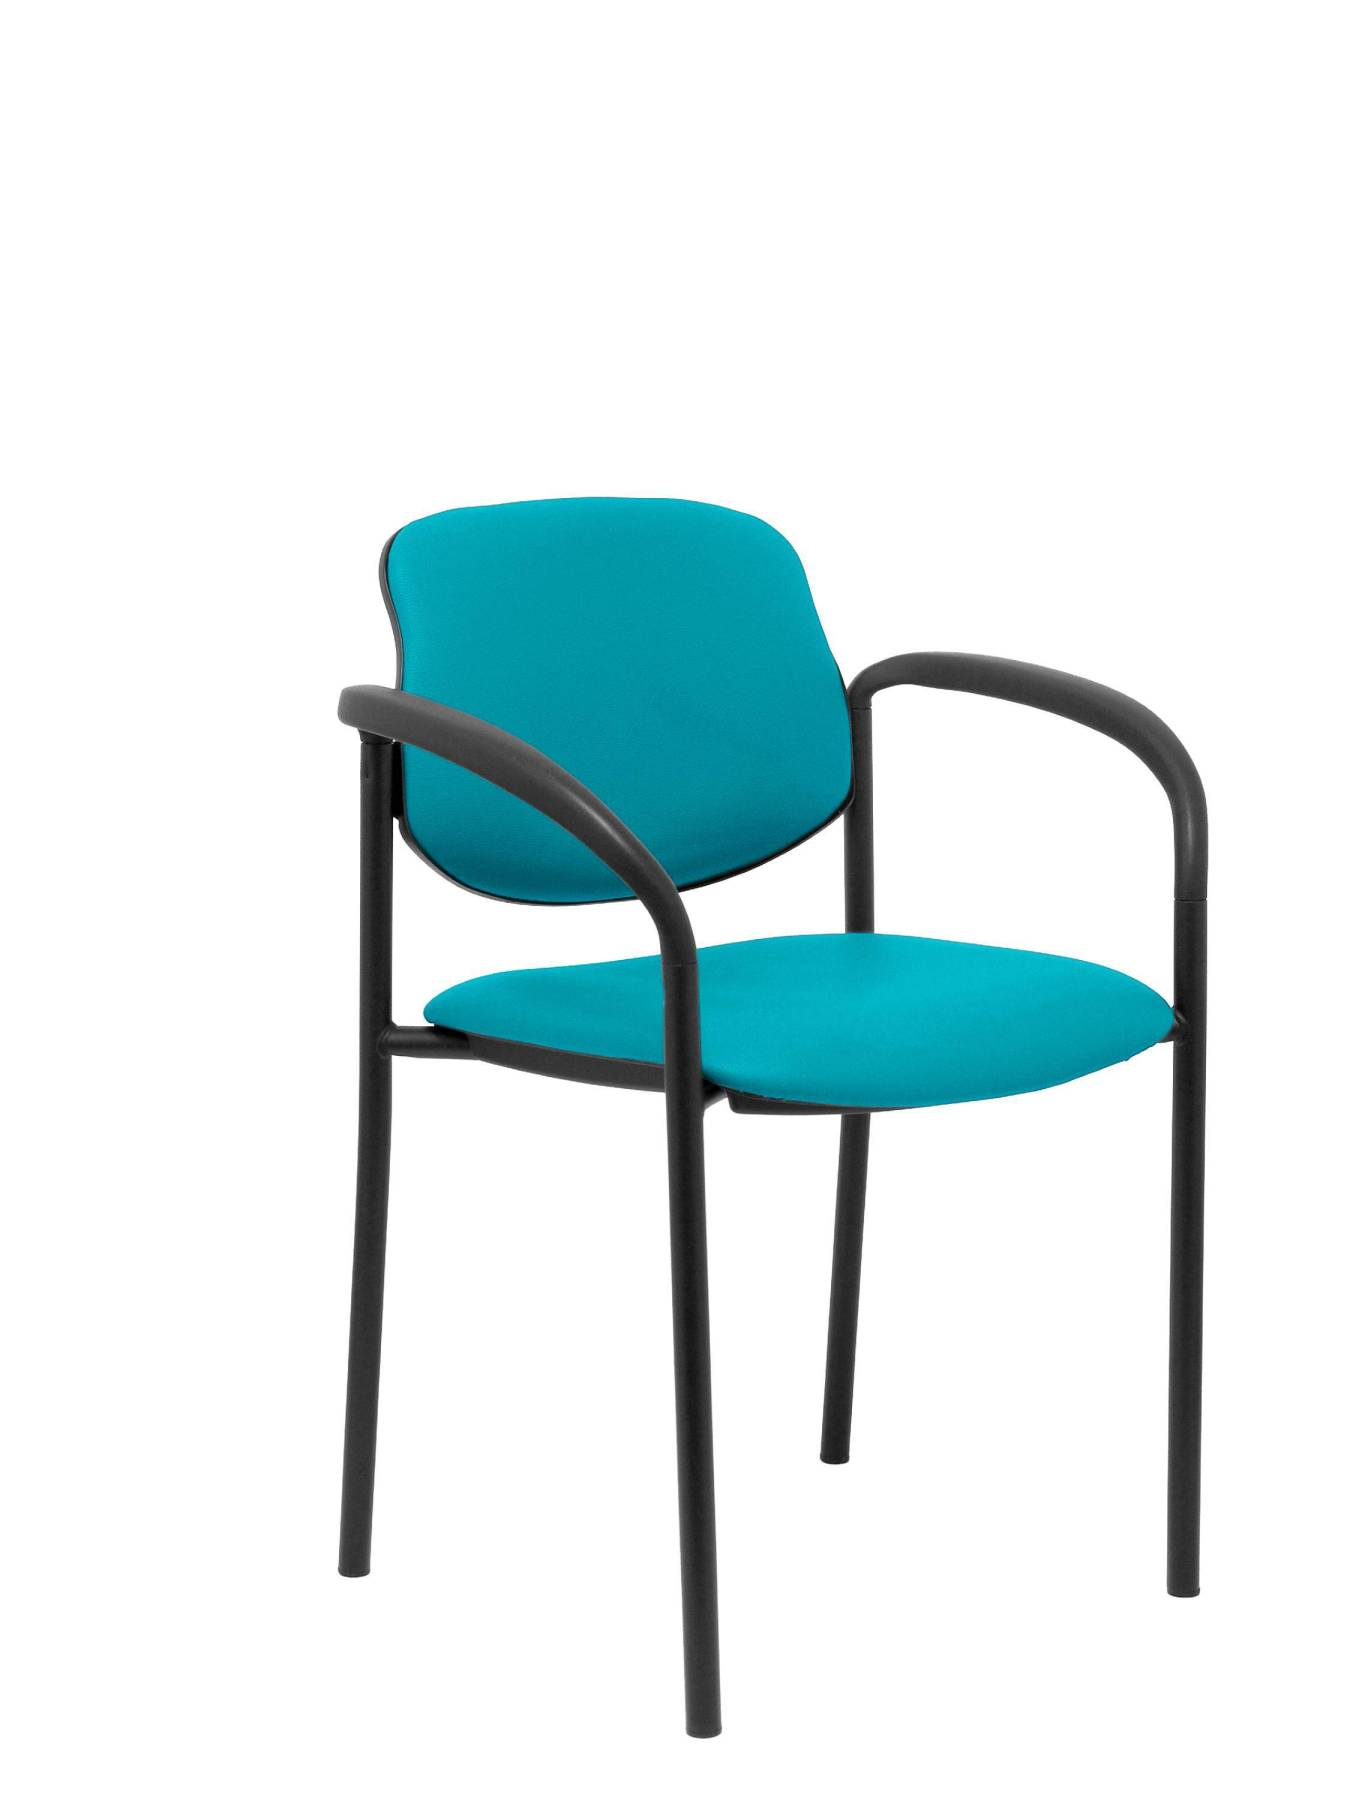 Visitor Chair 4's Topsy, With Arms And Estructrua Negro-up Seat And Backstop Upholstered In Tissue Similpiel Green PIQU